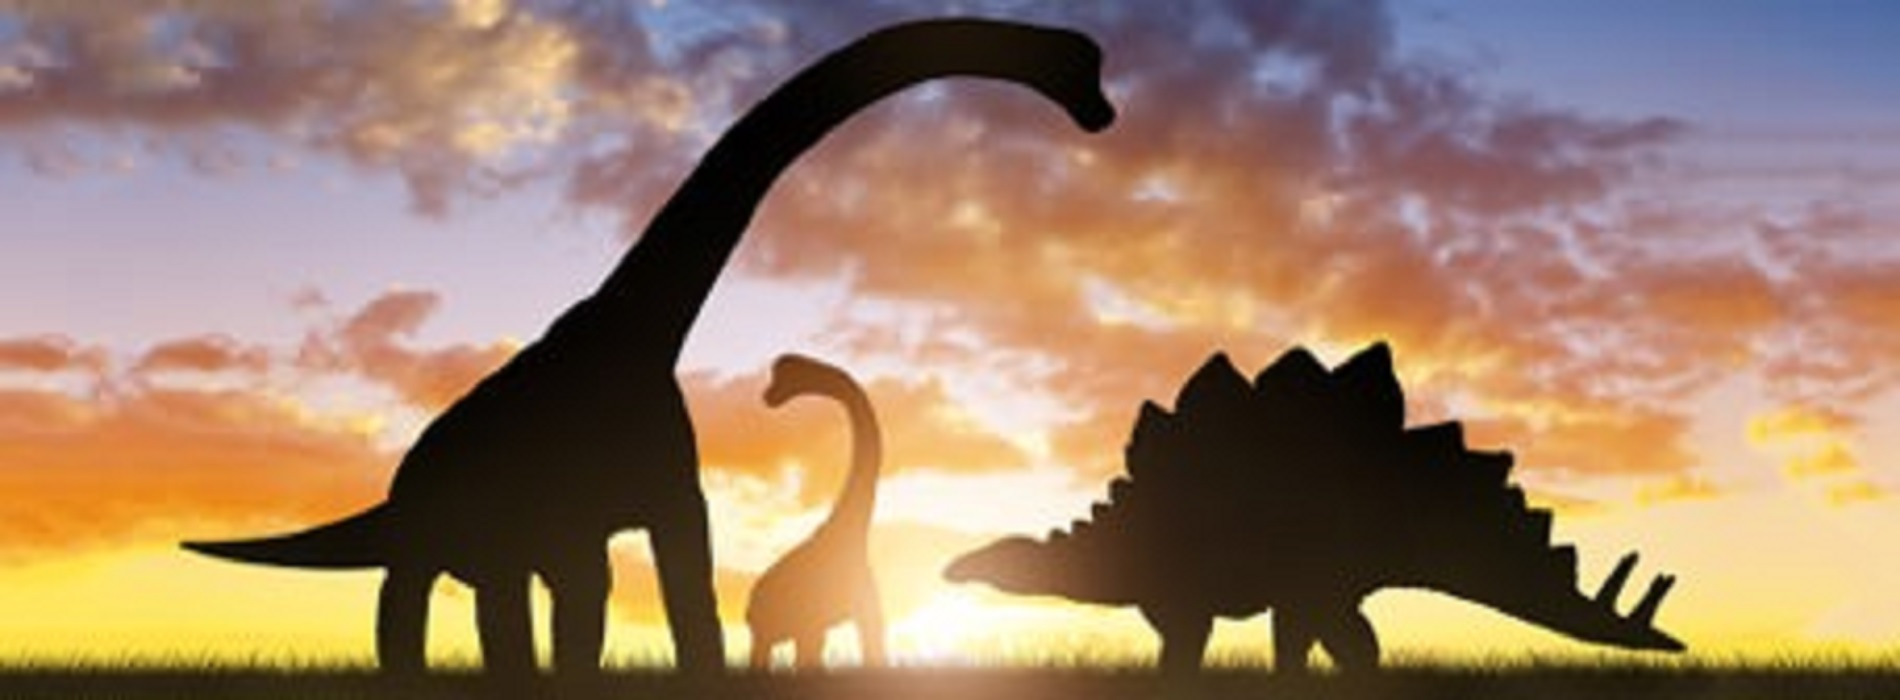 Dinosaur facts and fictions